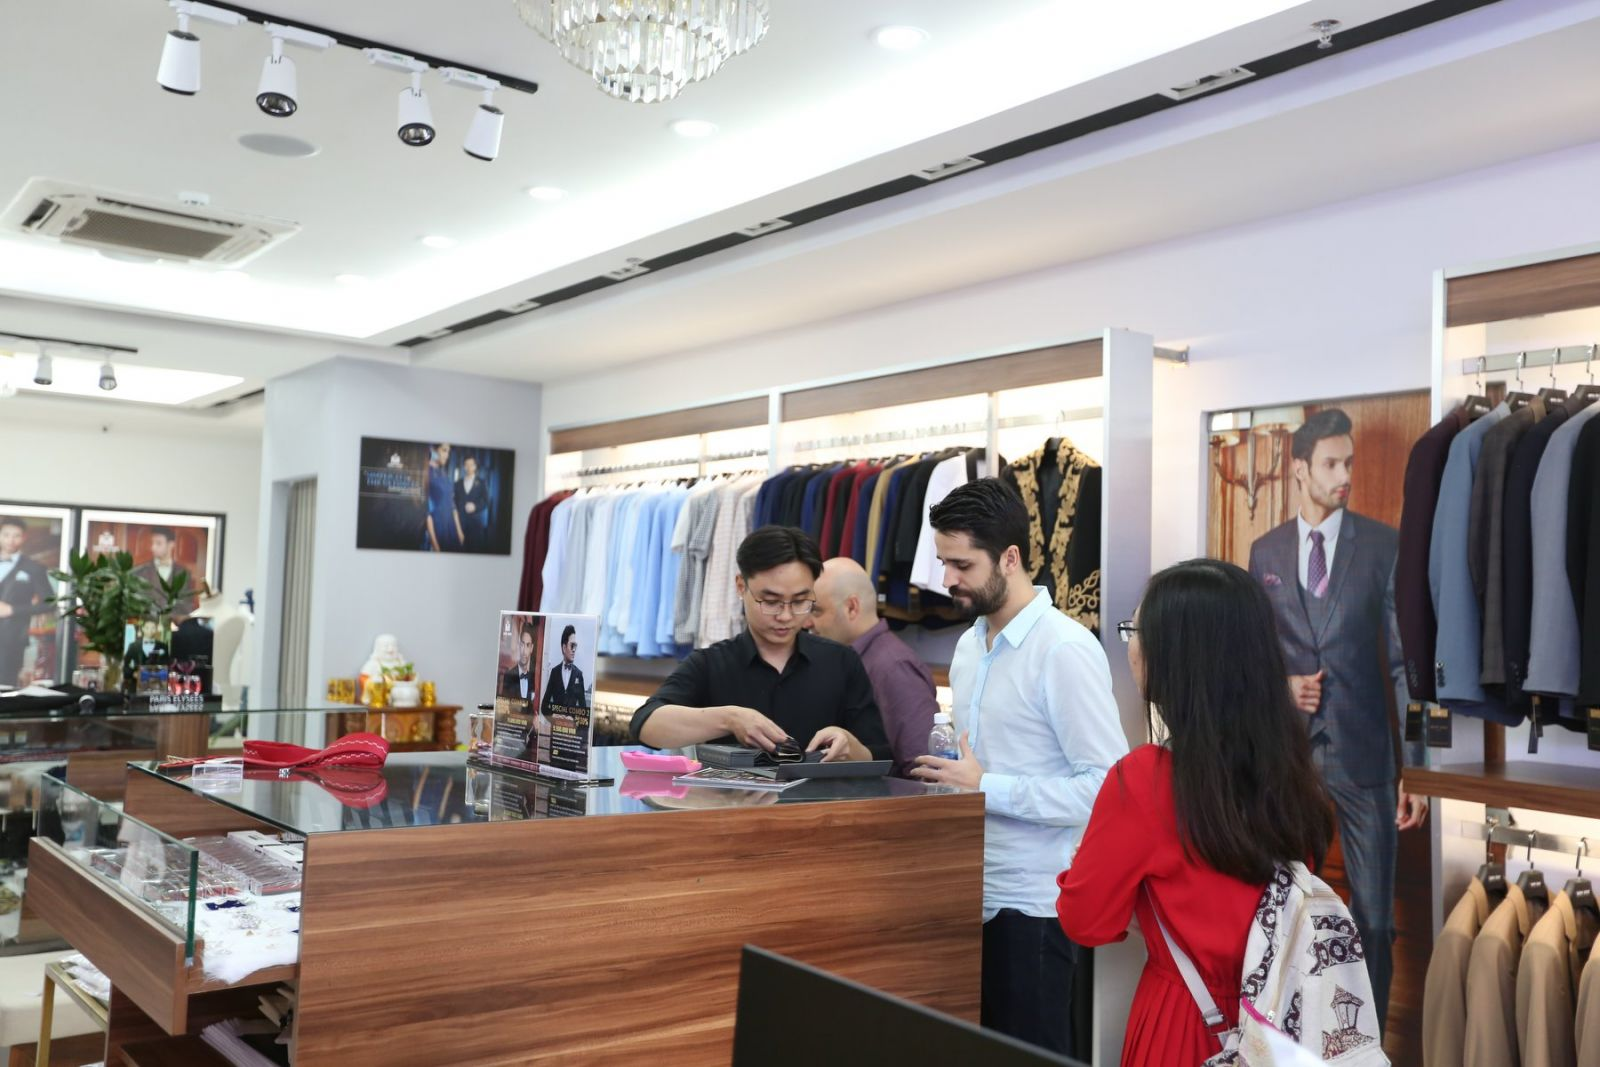 Mon Amie Saigon Pearl - An Ideal place for foreigners to get a custom tailored suit.